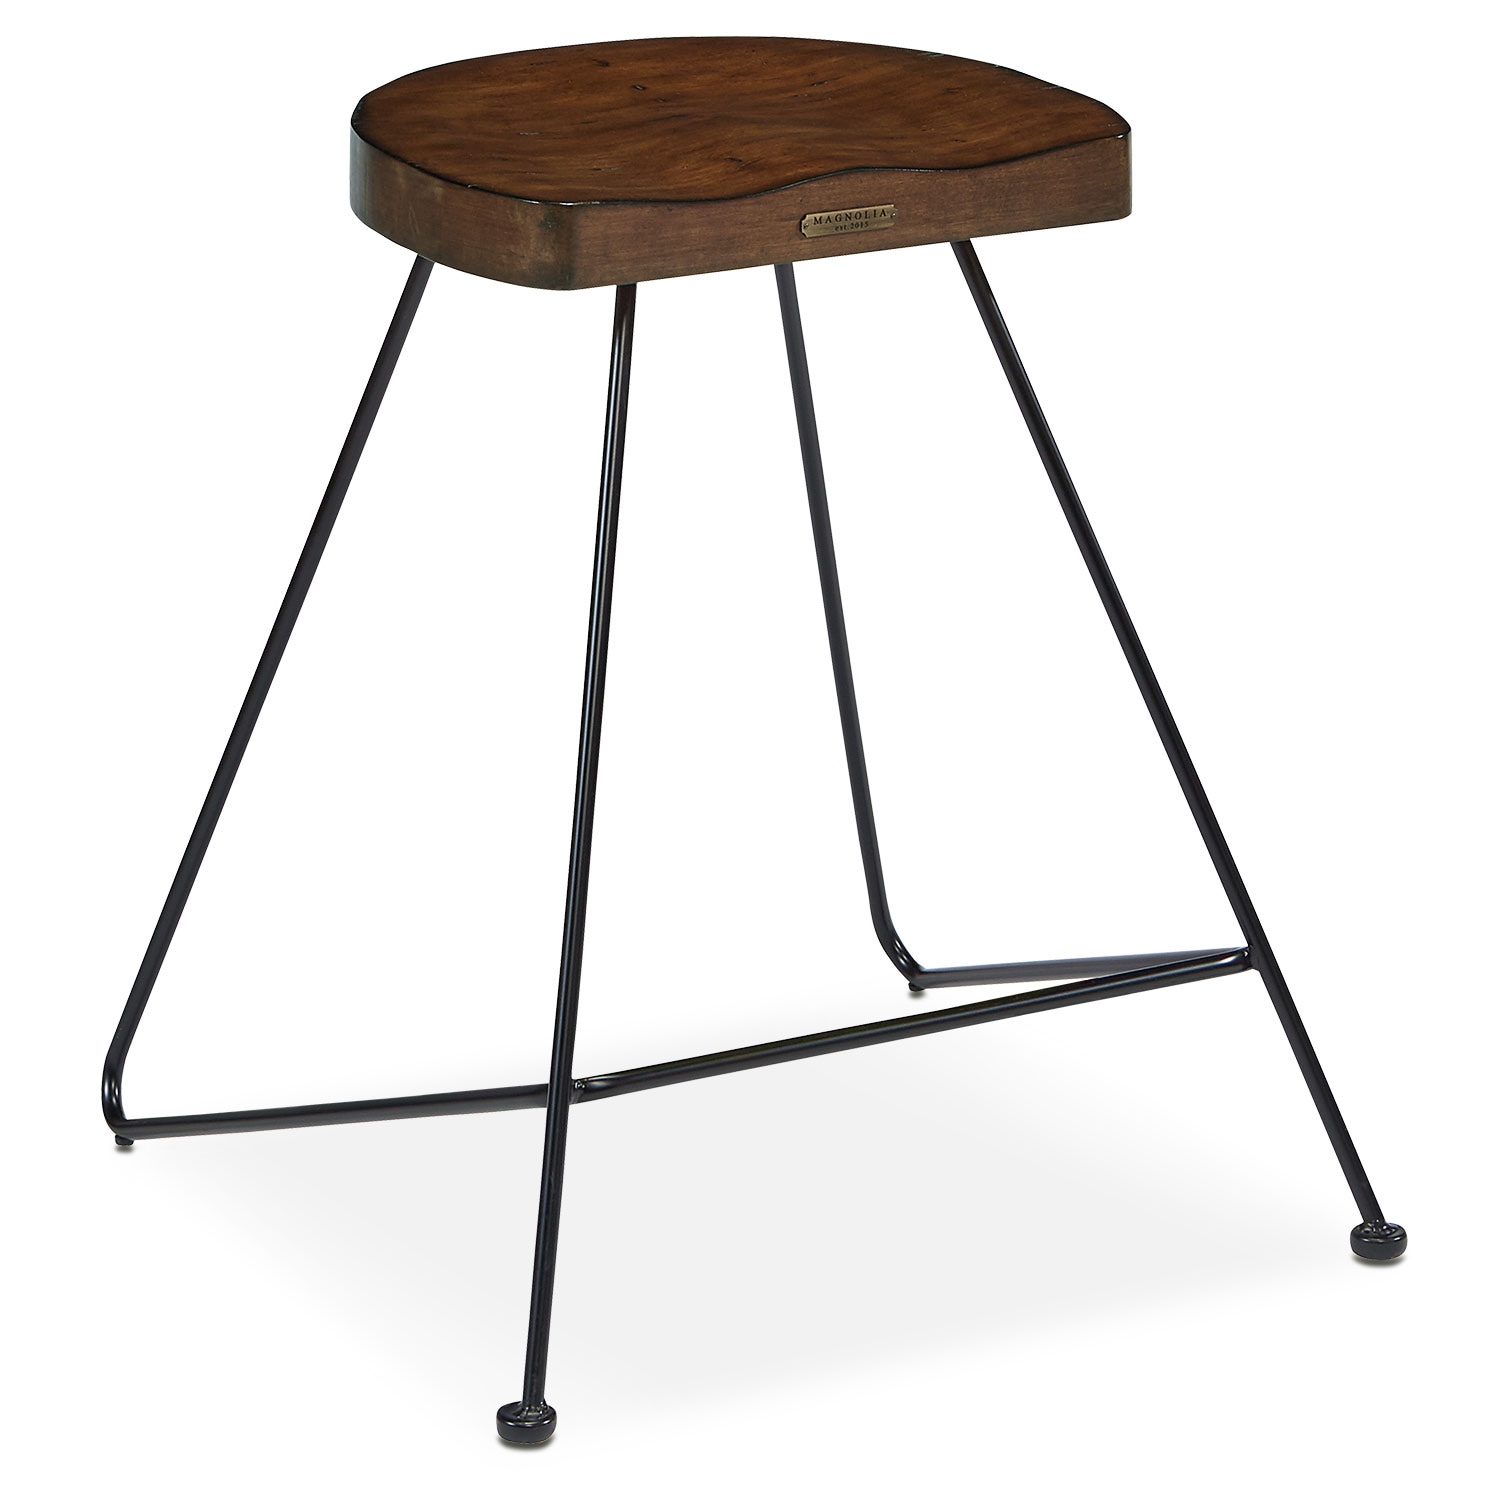 Accent and Occasional Furniture - Metal Framed Stool with Wood Seat - Milk Crate